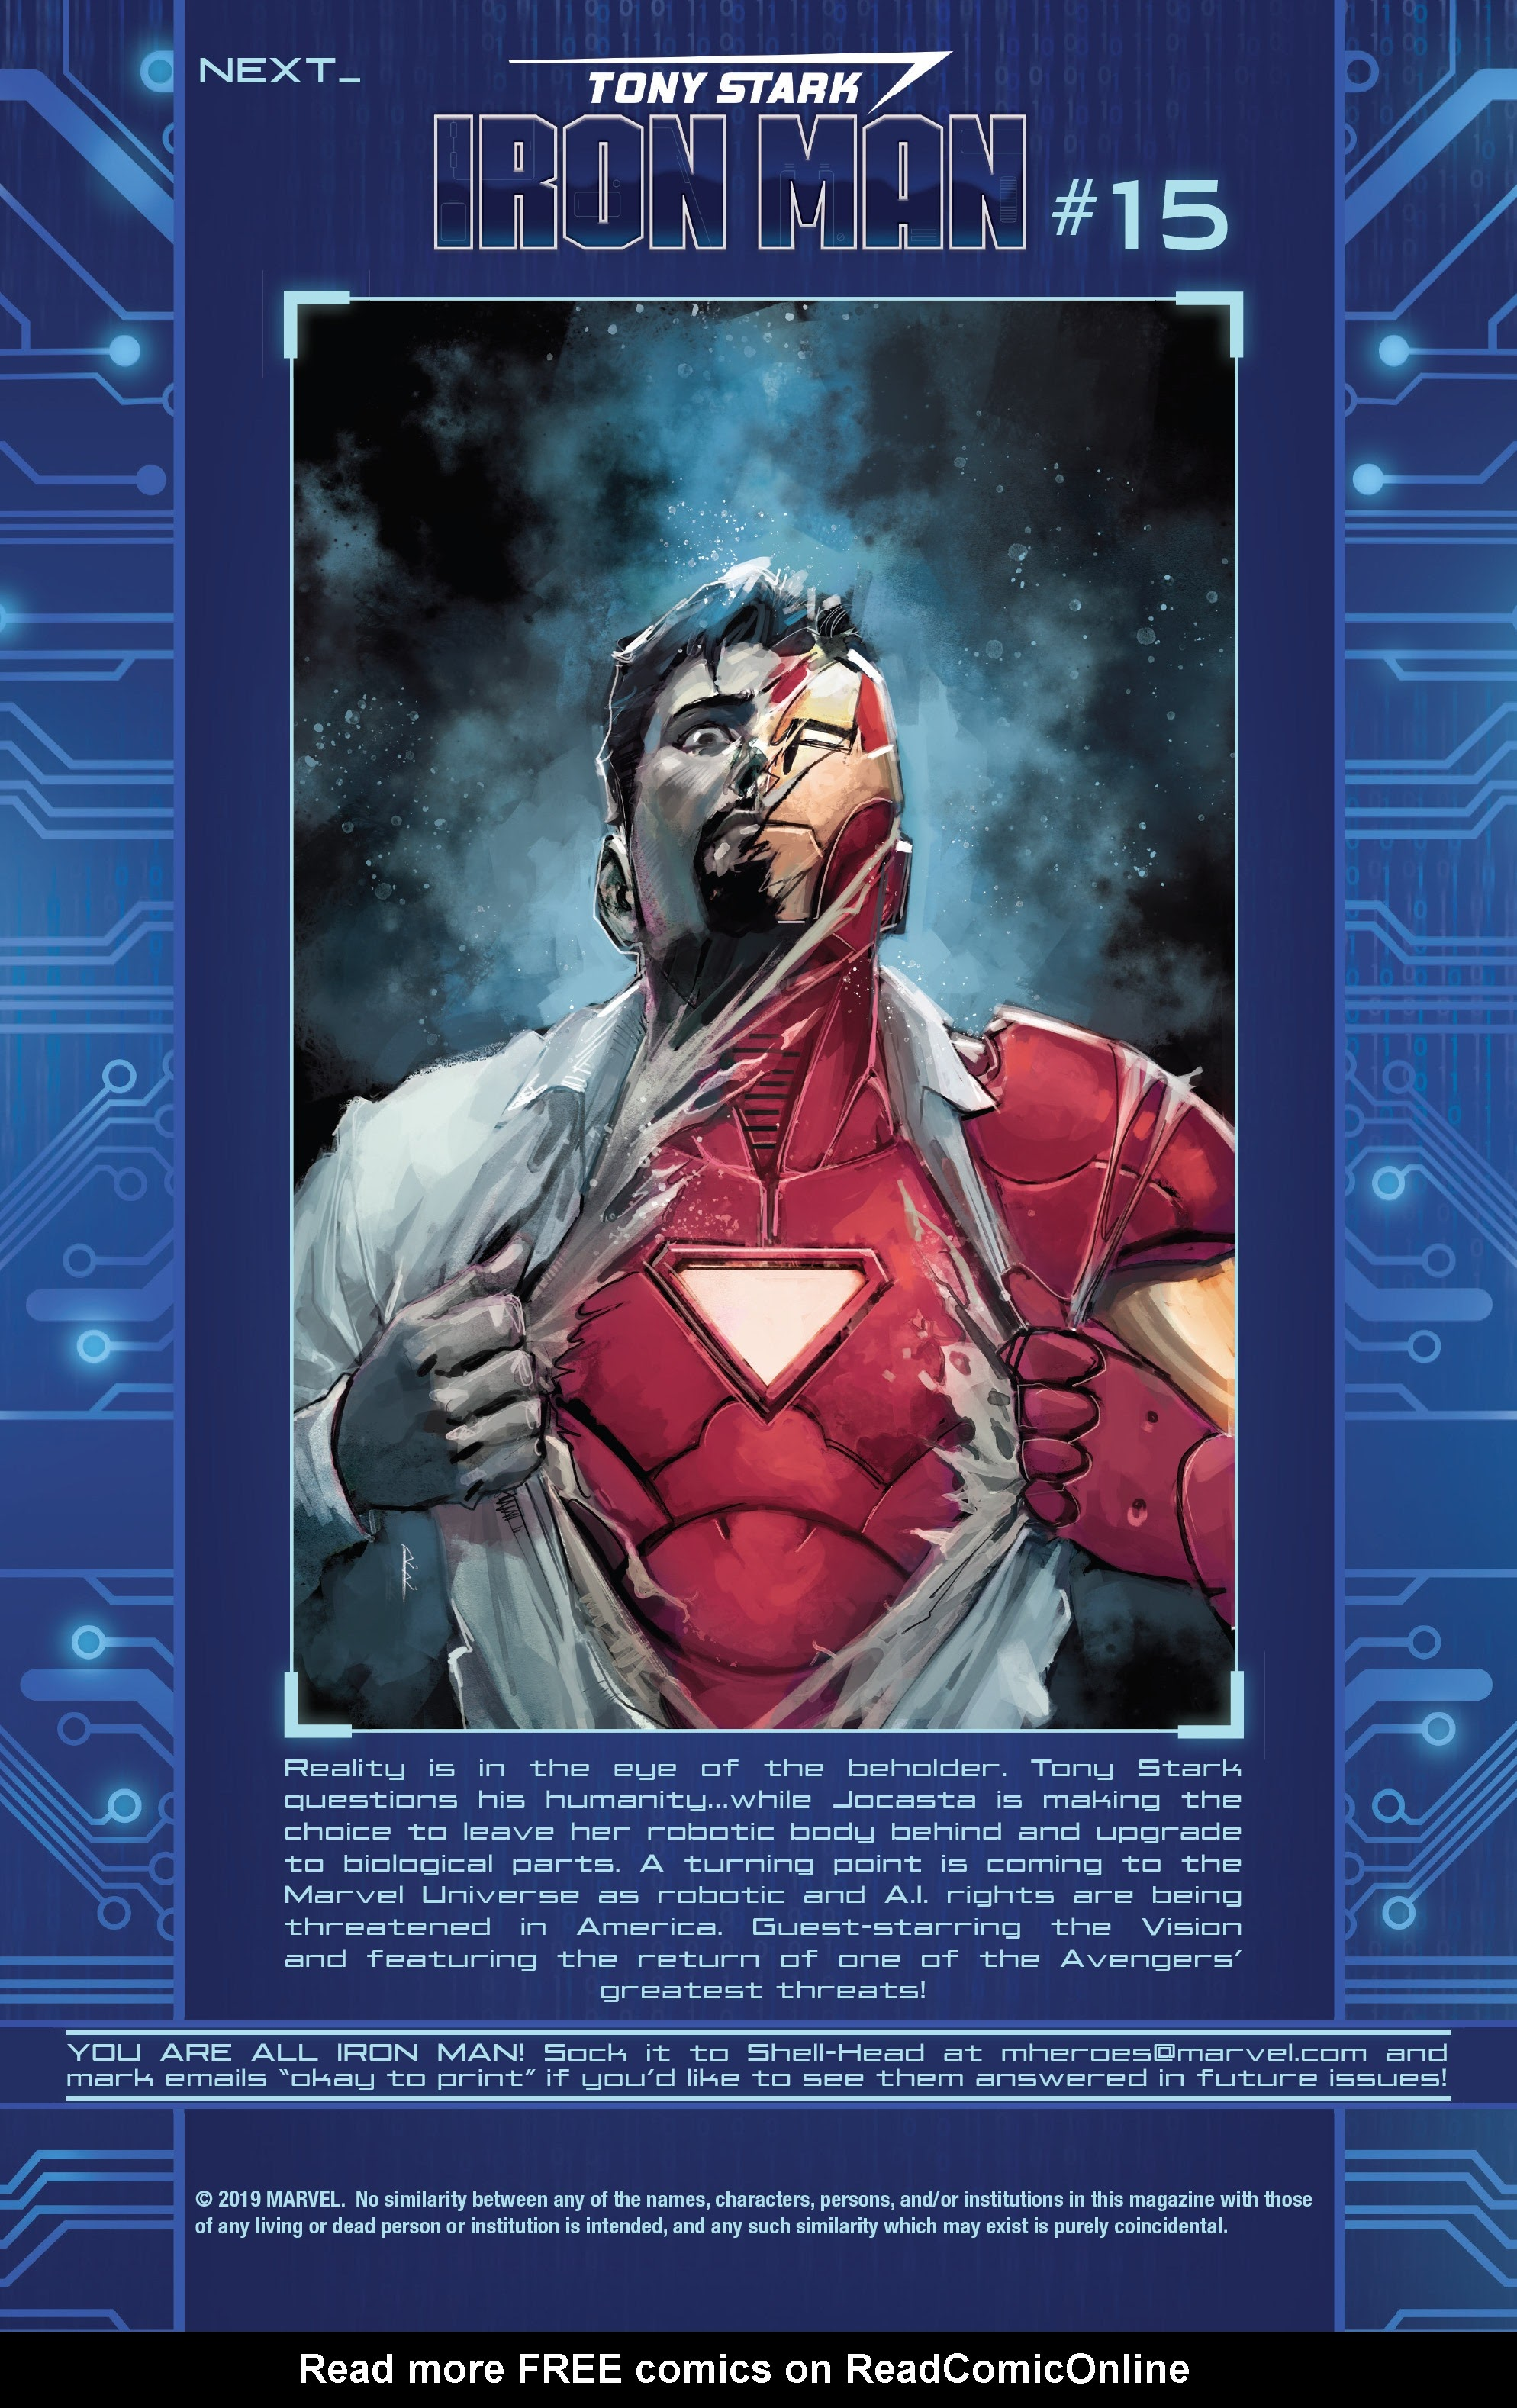 Read online Tony Stark: Iron Man comic -  Issue #14 - 23